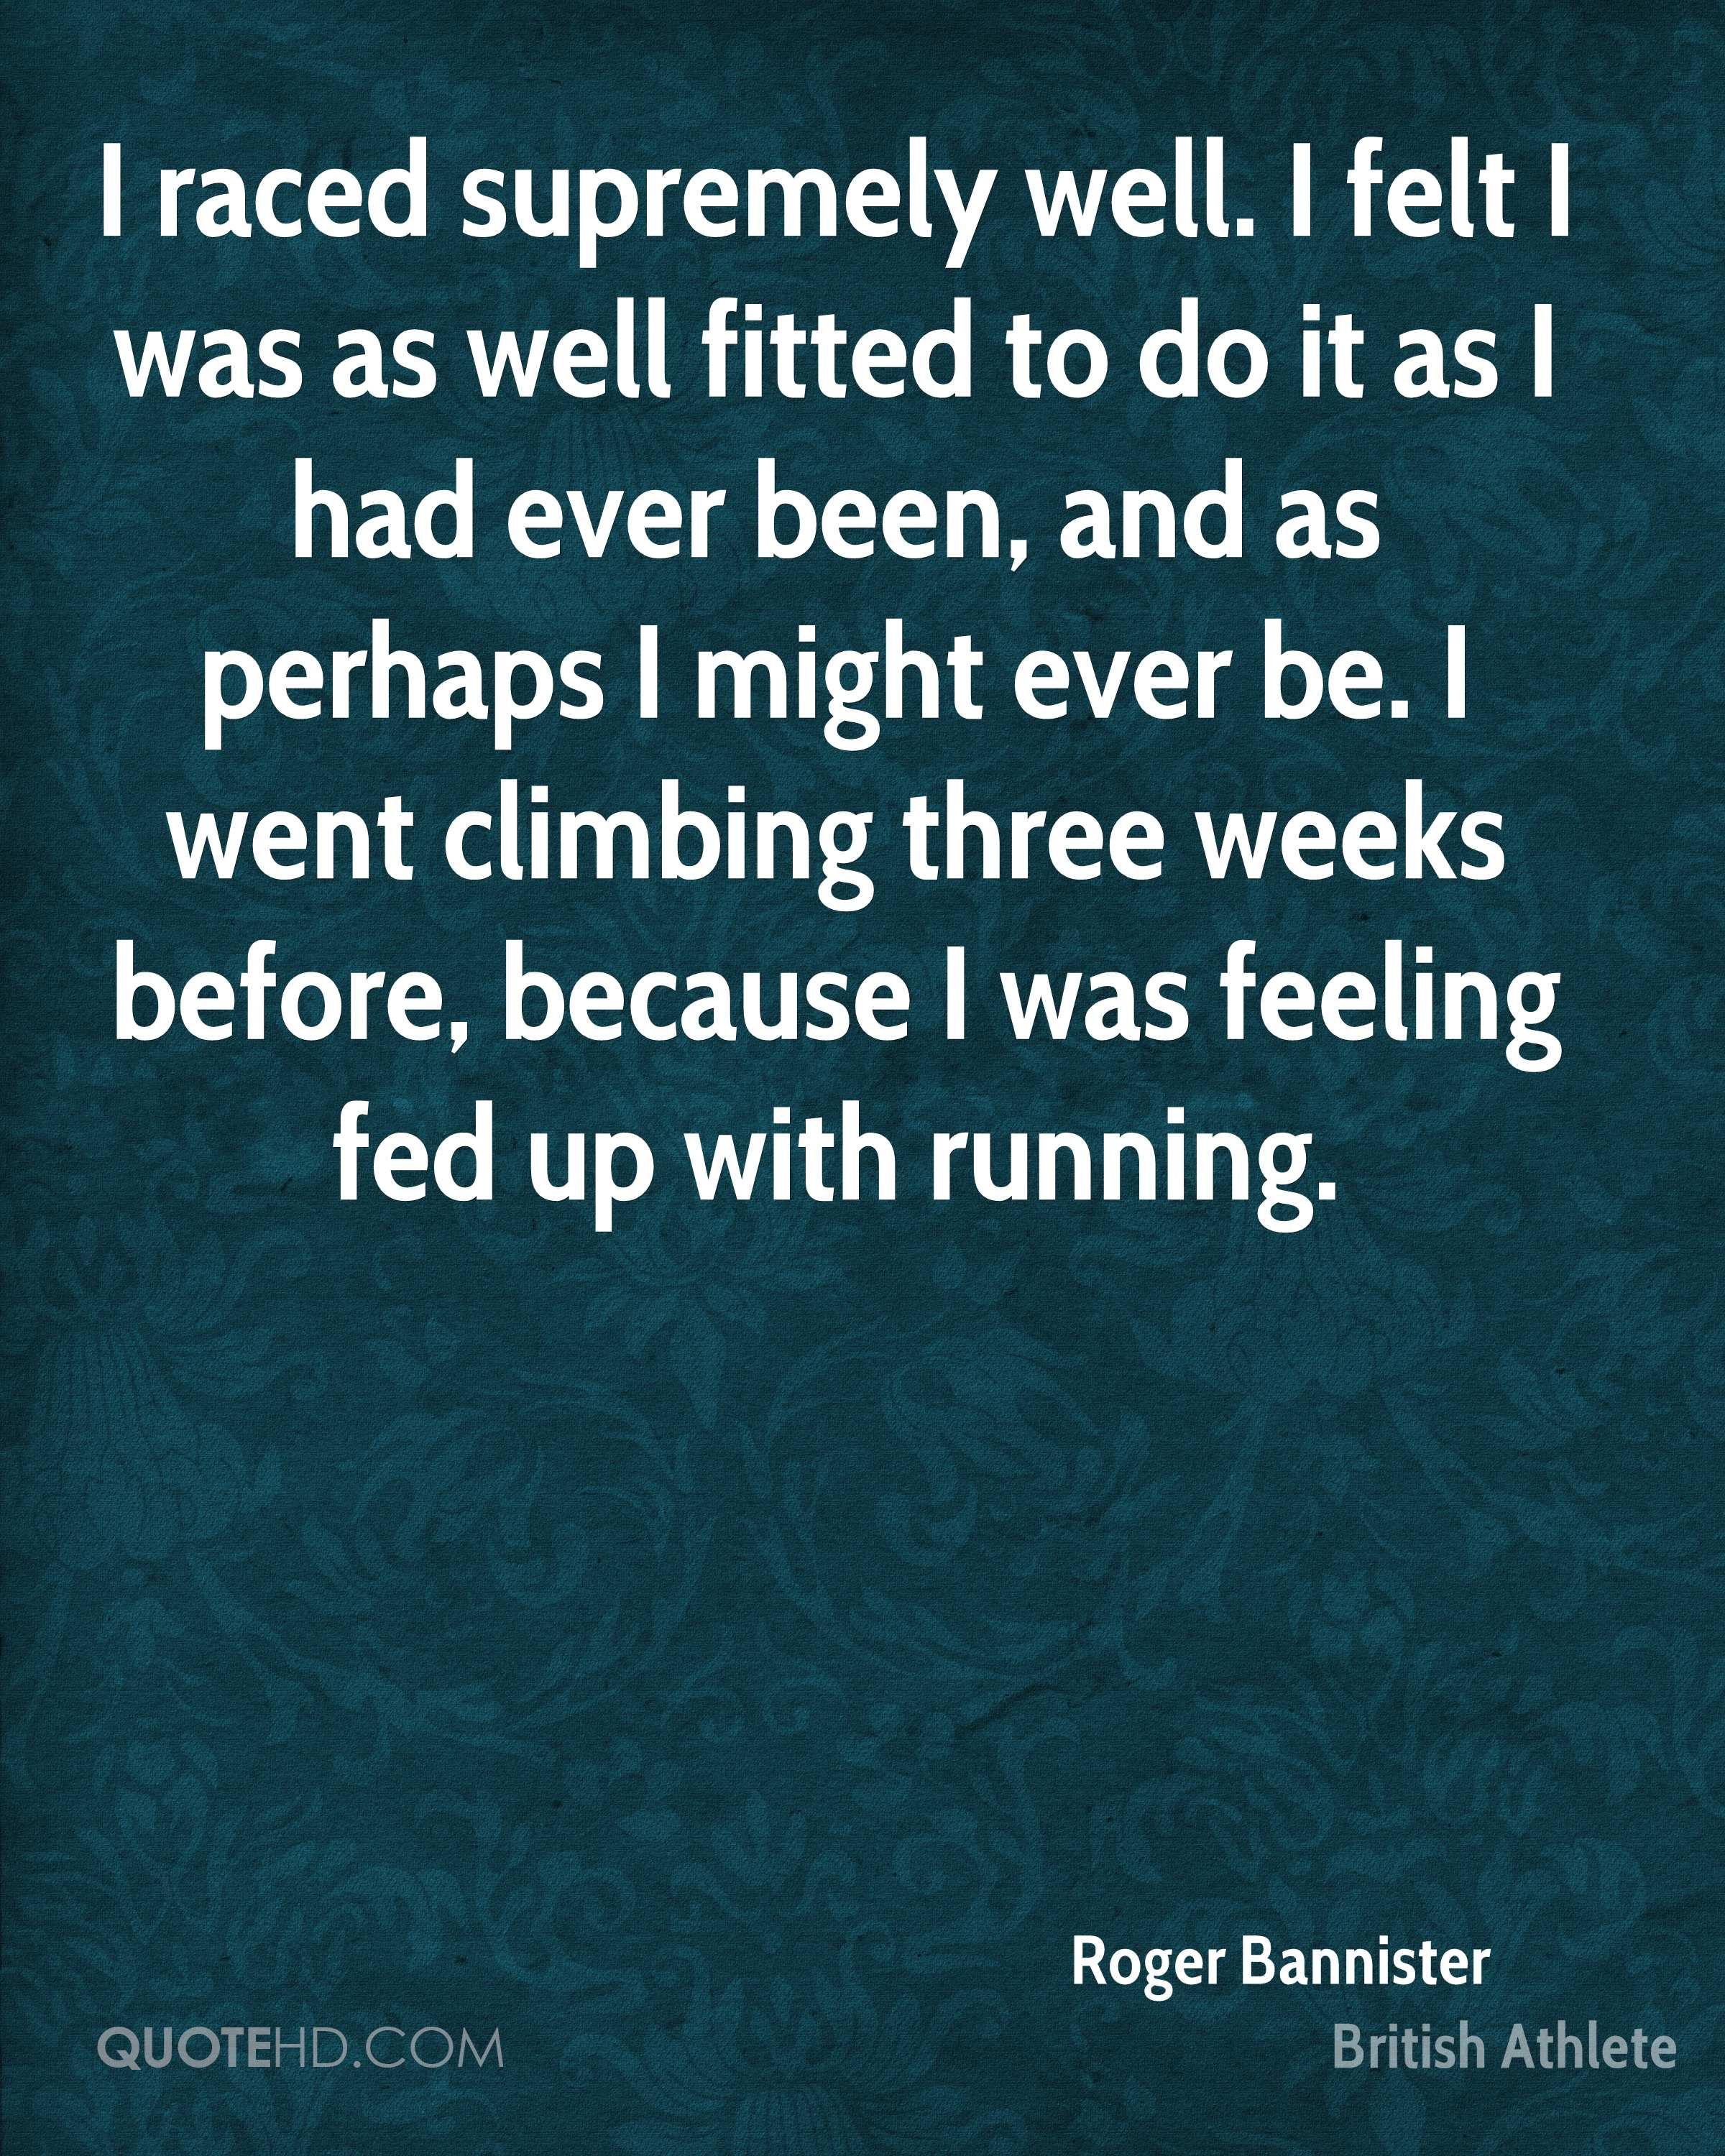 I raced supremely well. I felt I was as well fitted to do it as I had ever been, and as perhaps I might ever be. I went climbing three weeks before, because I was feeling fed up with running.